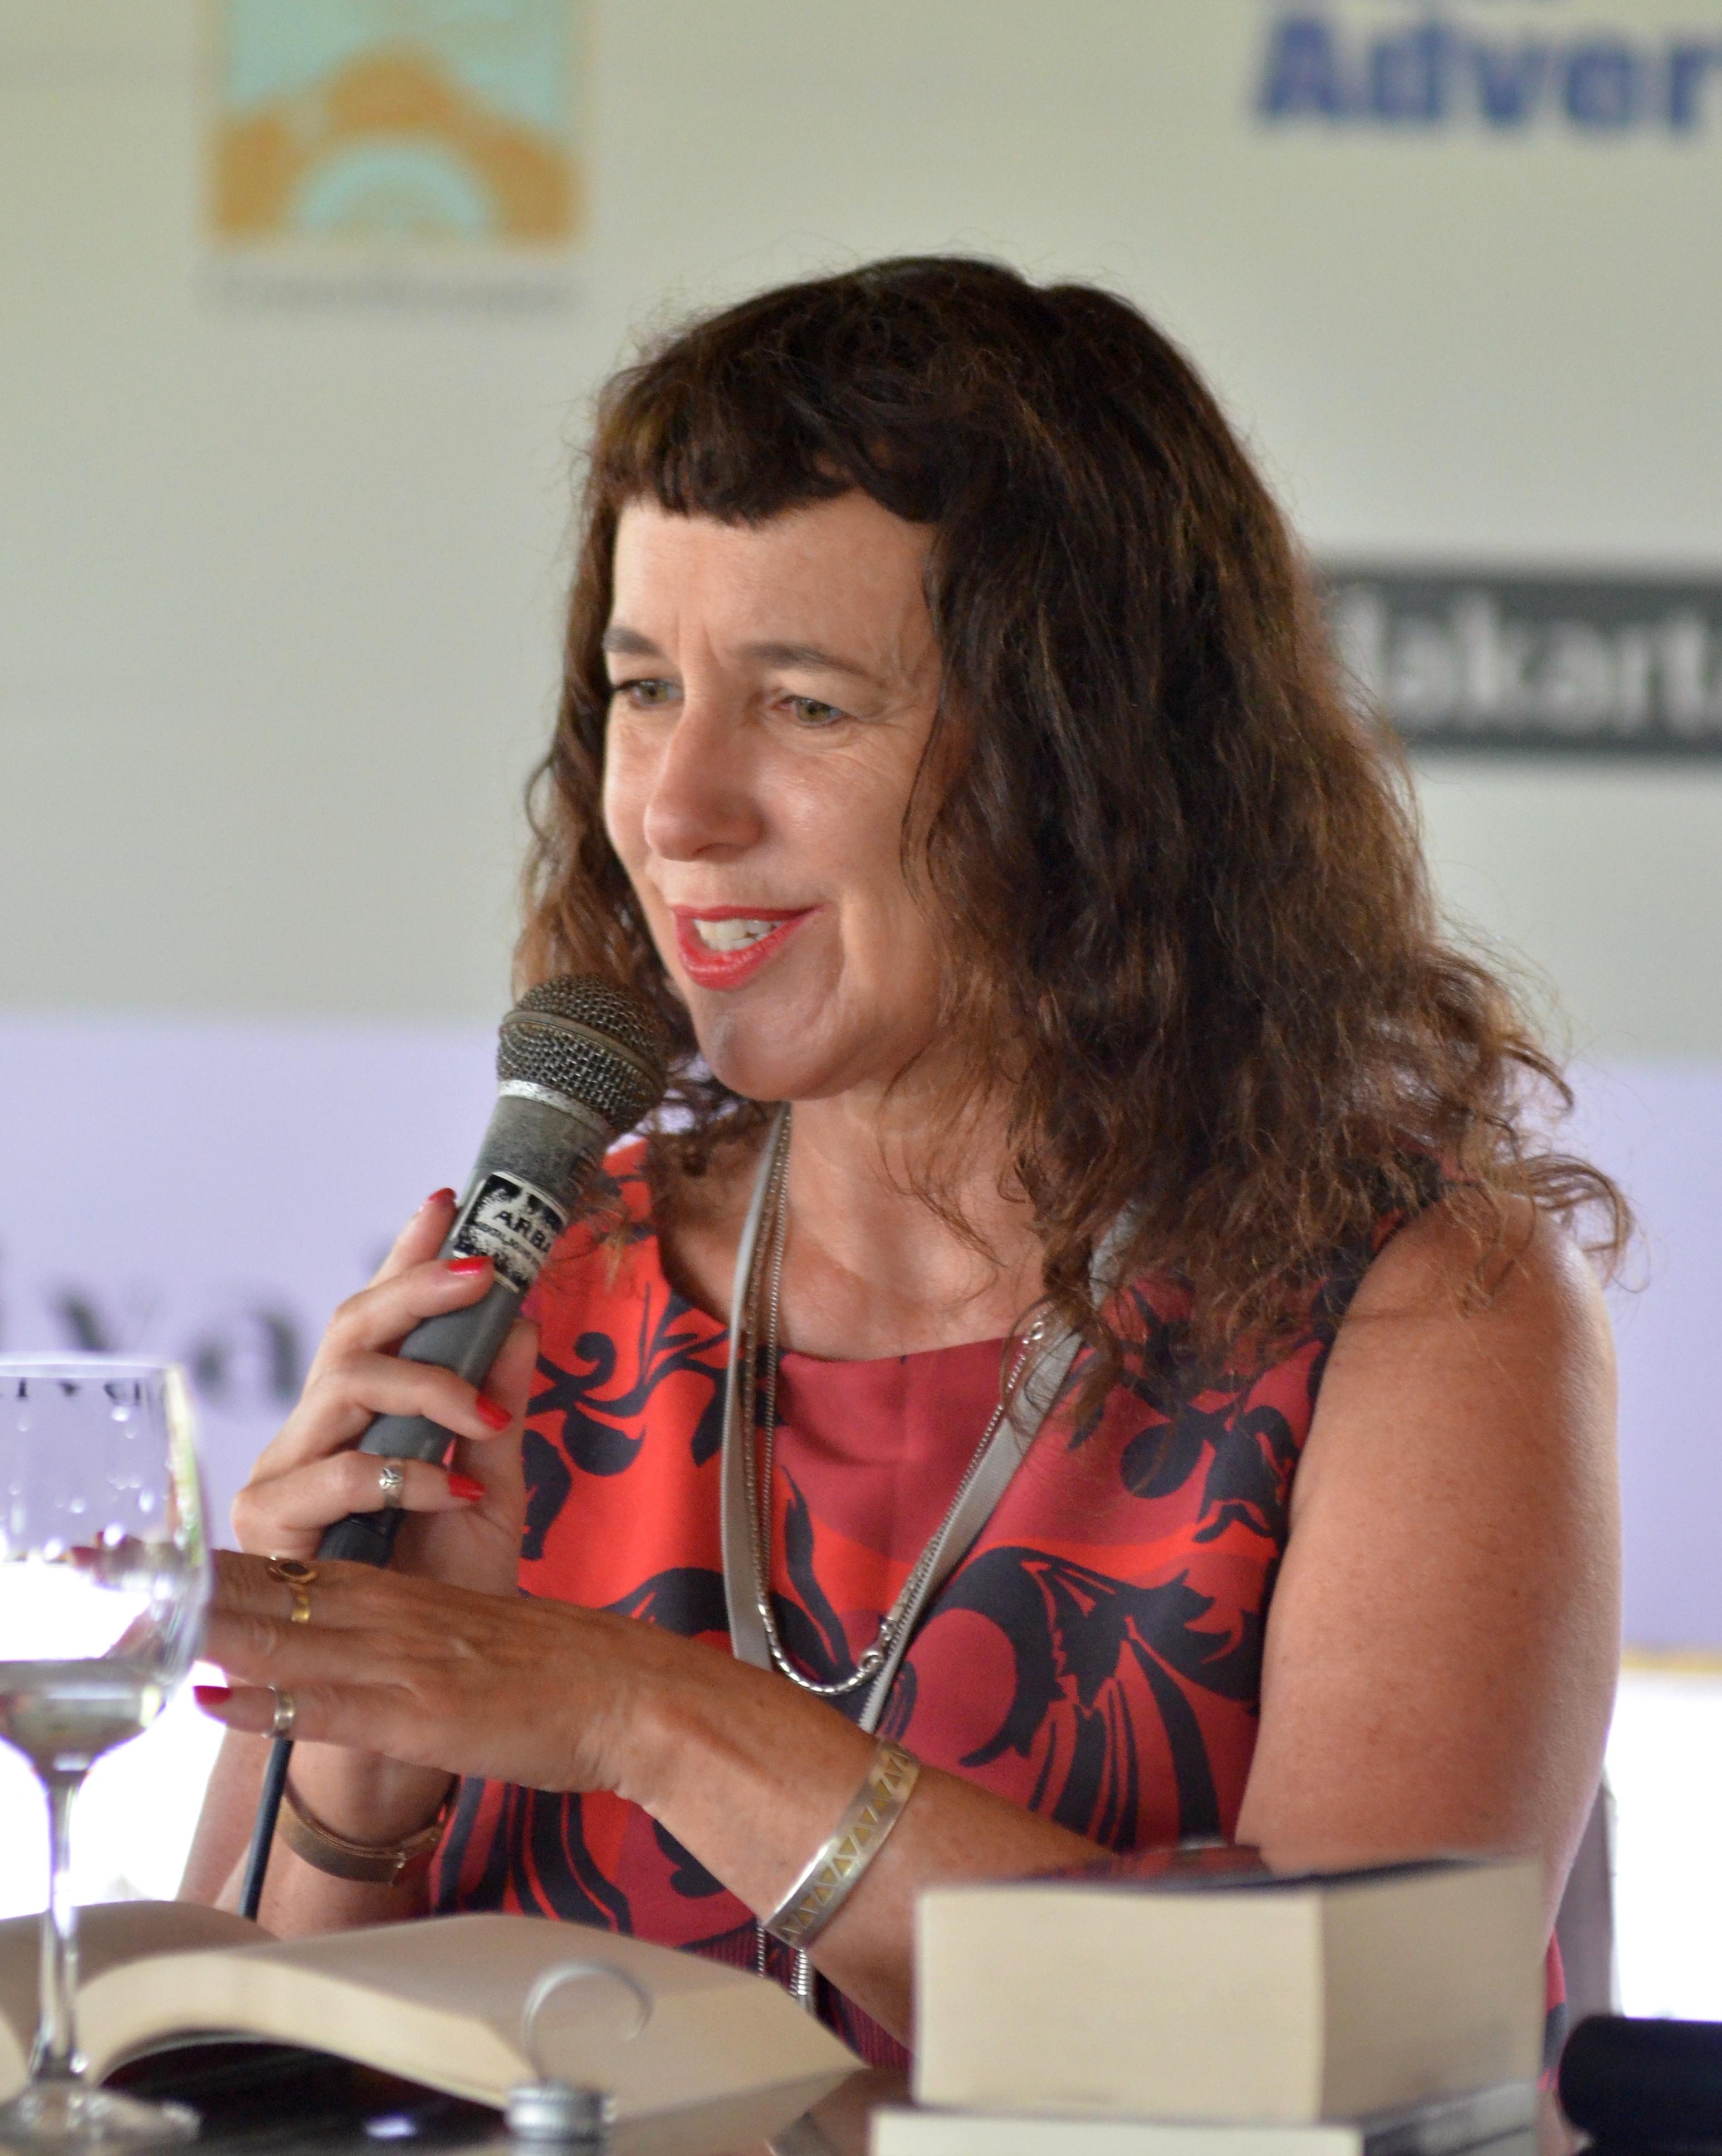 Carmody at a writing event in 2012